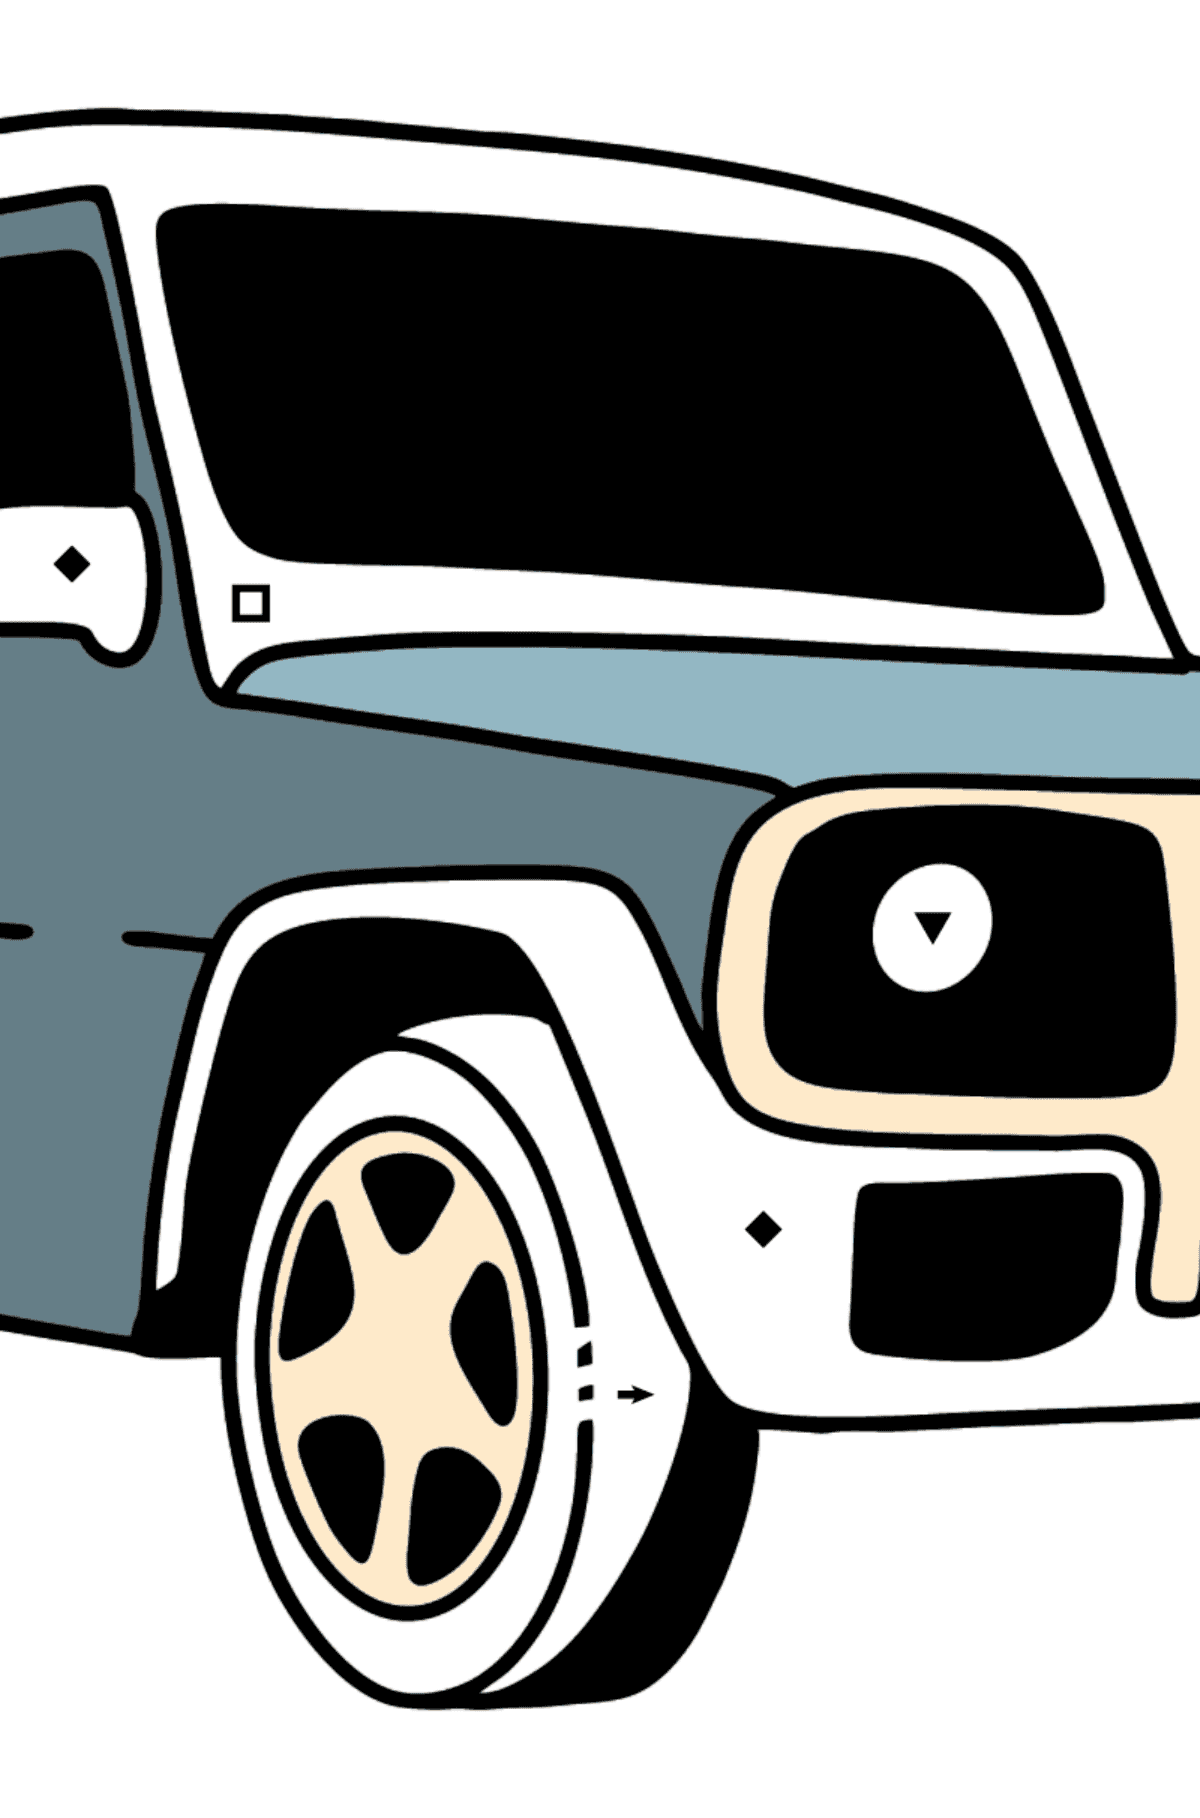 Mercedes-Benz G-Class SUV coloring page - Coloring by Symbols for Kids